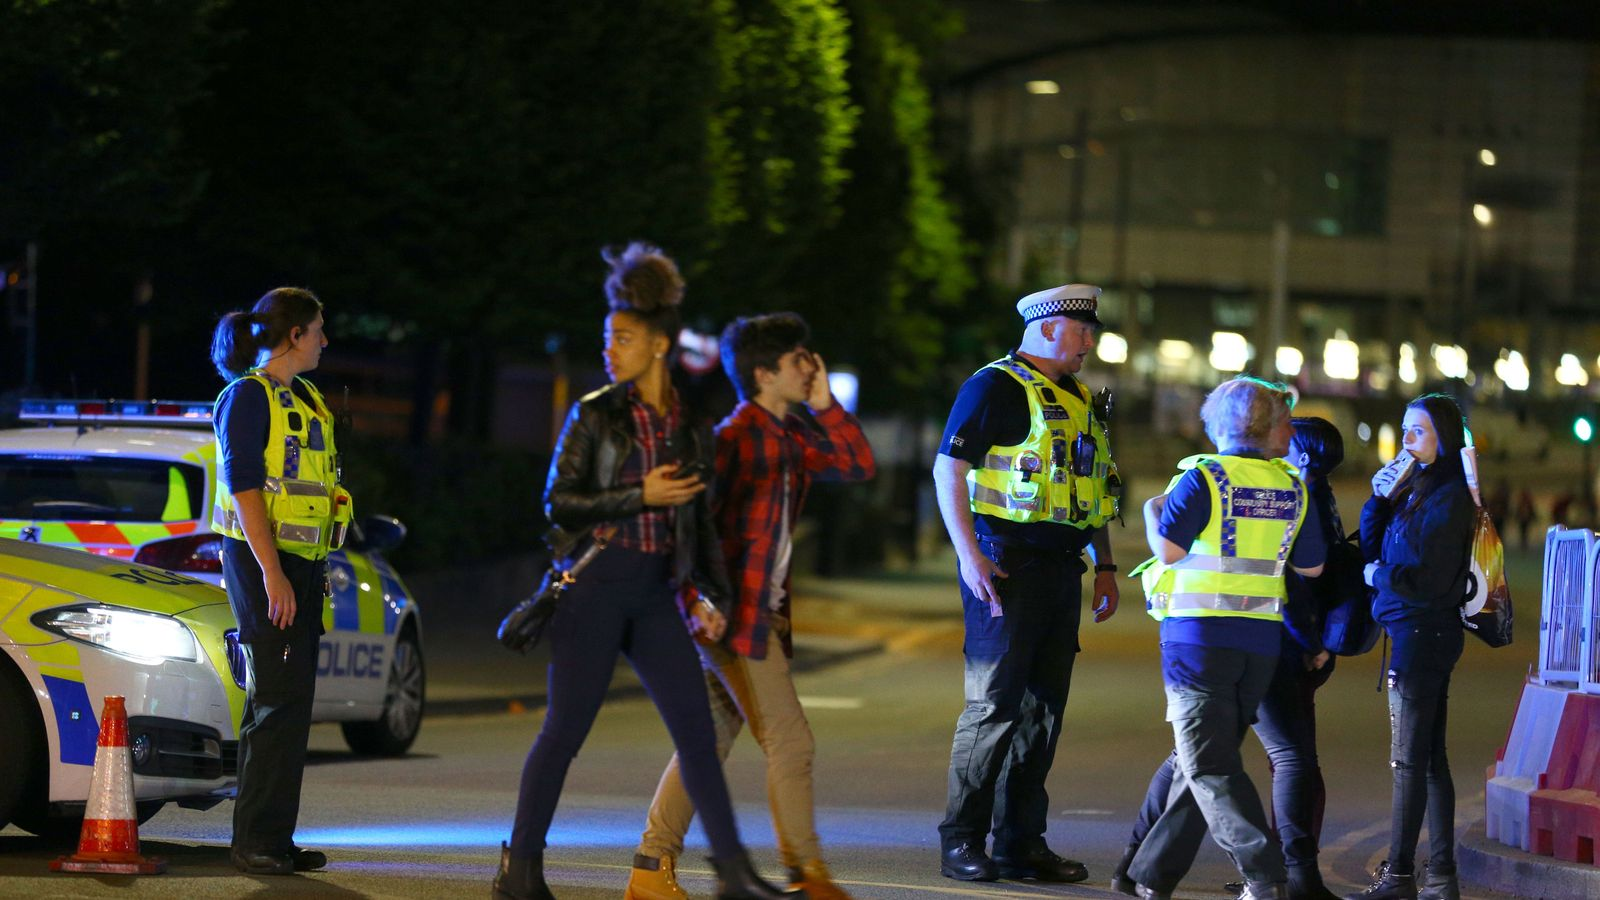 Manchester Police Arrest 3 Men In Connection To Arena Bombing